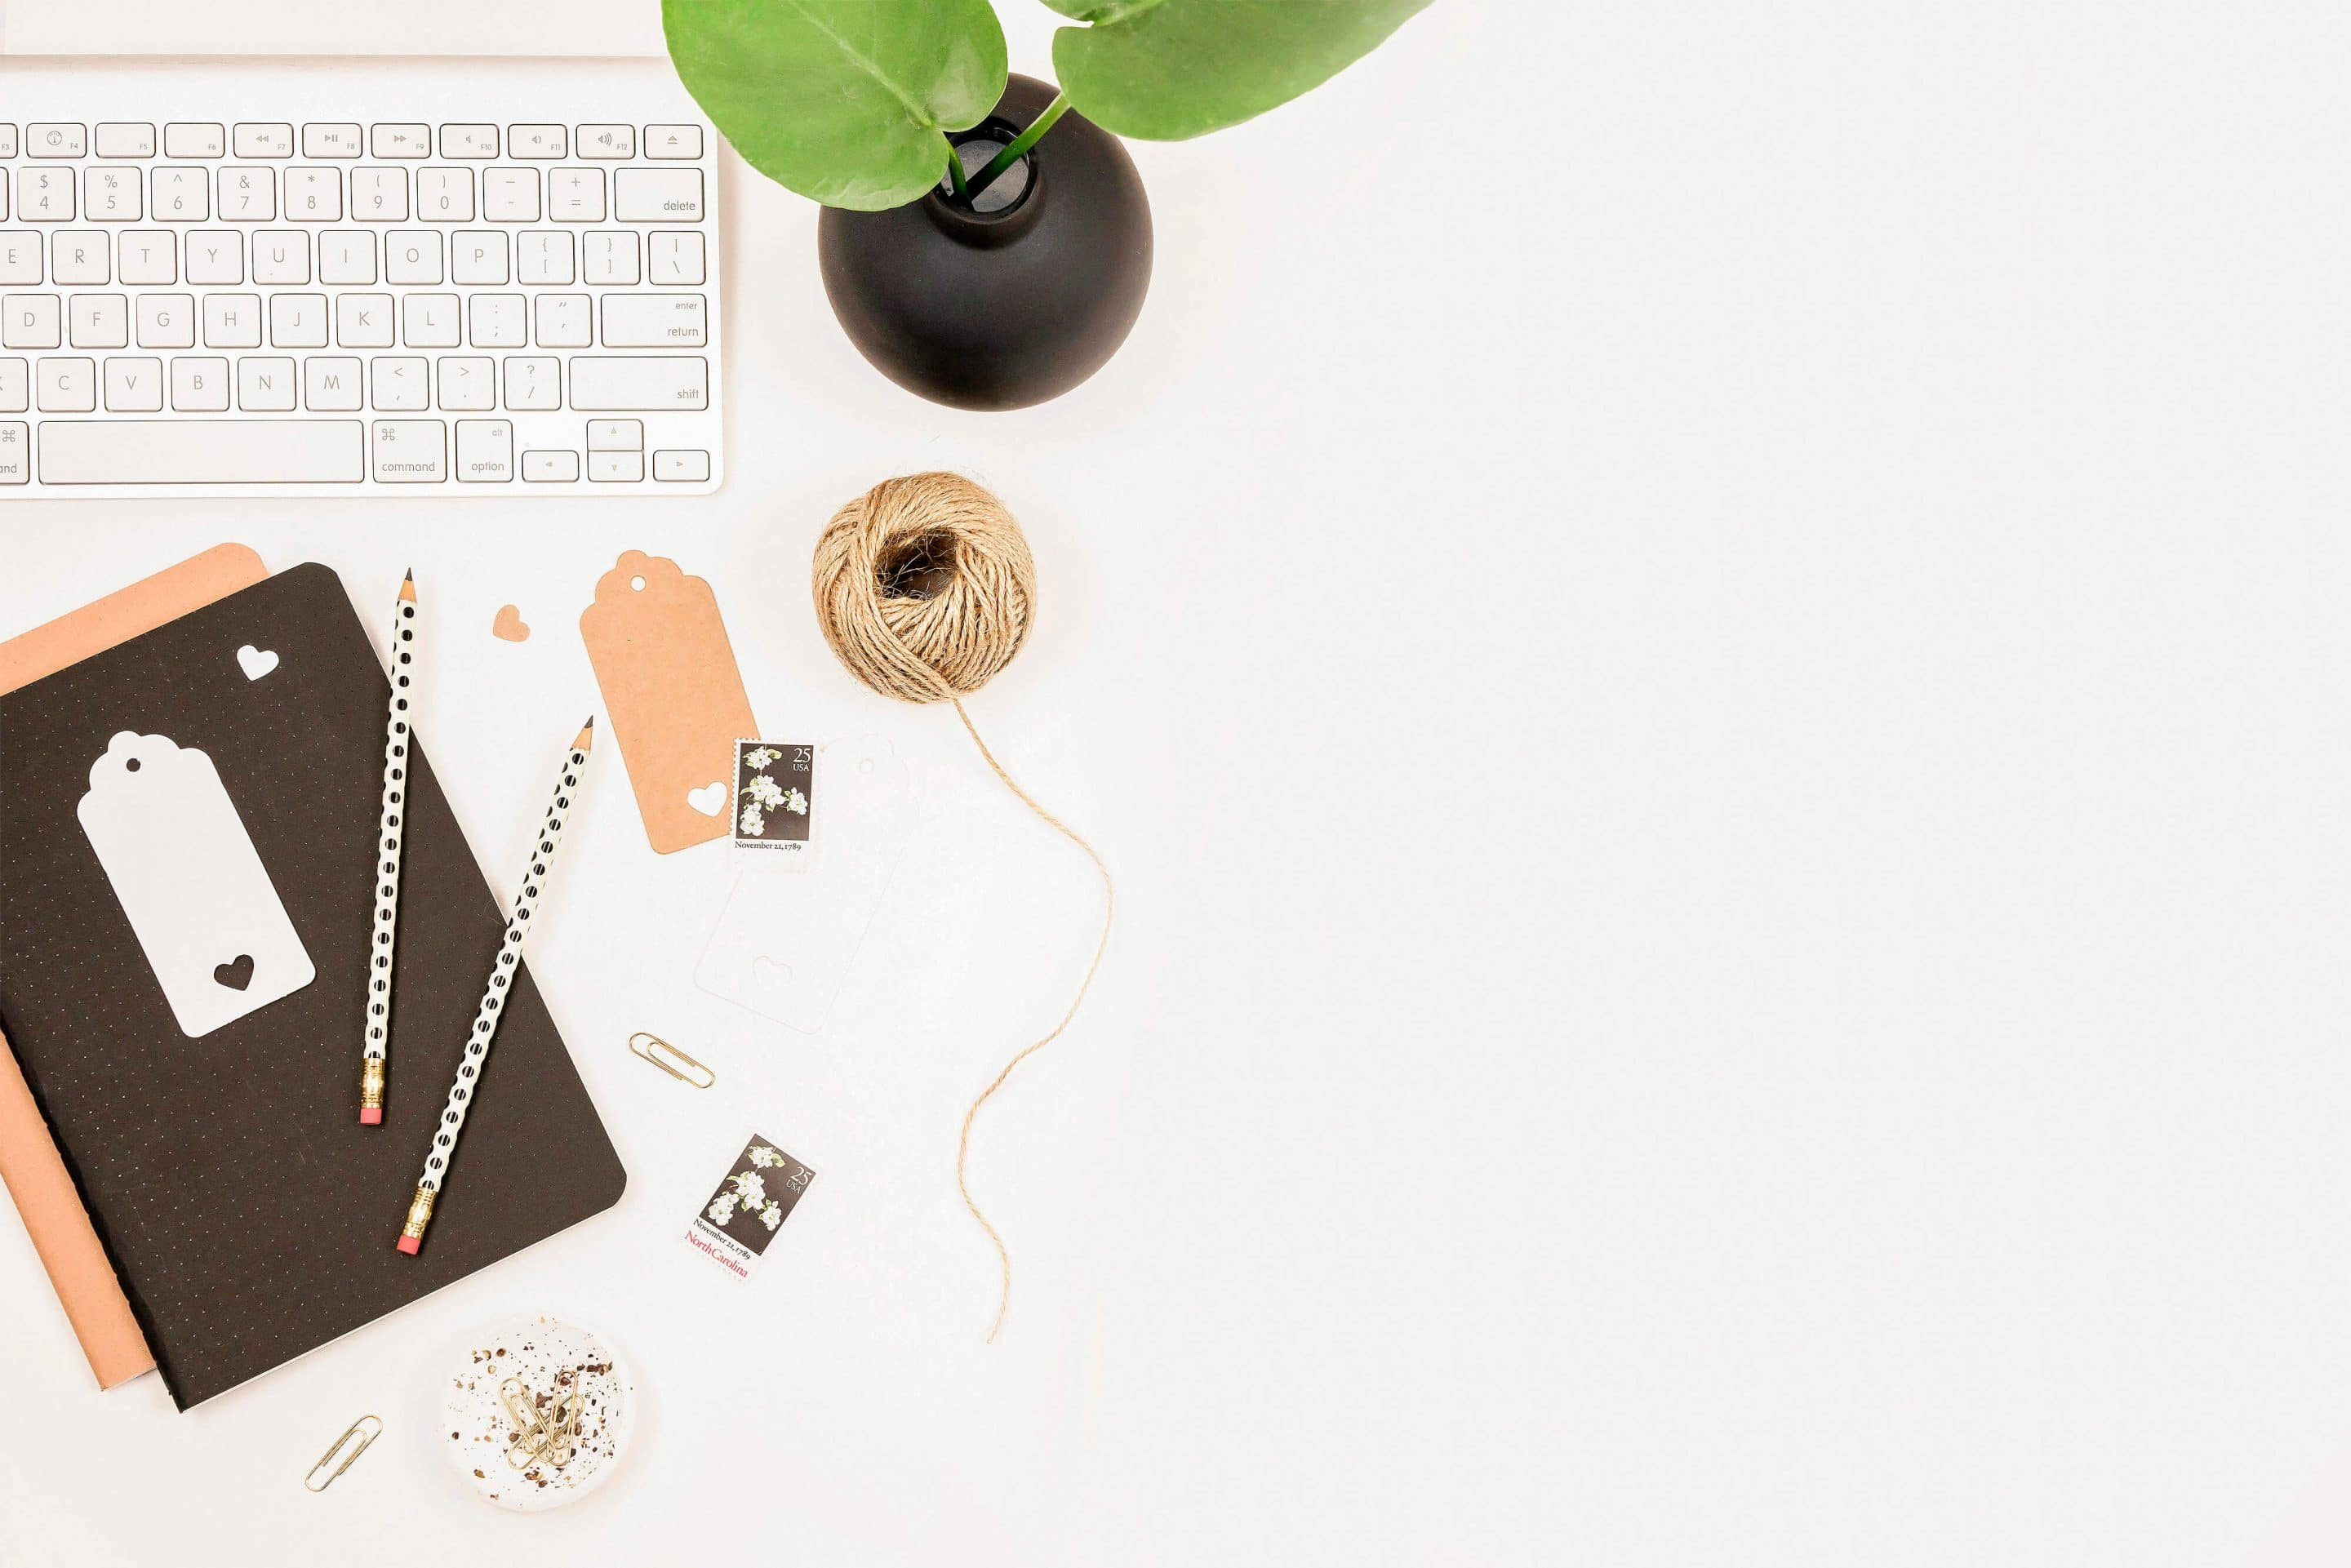 Get Your Zen On: 6 Ways to Turn Your Office into A Spa